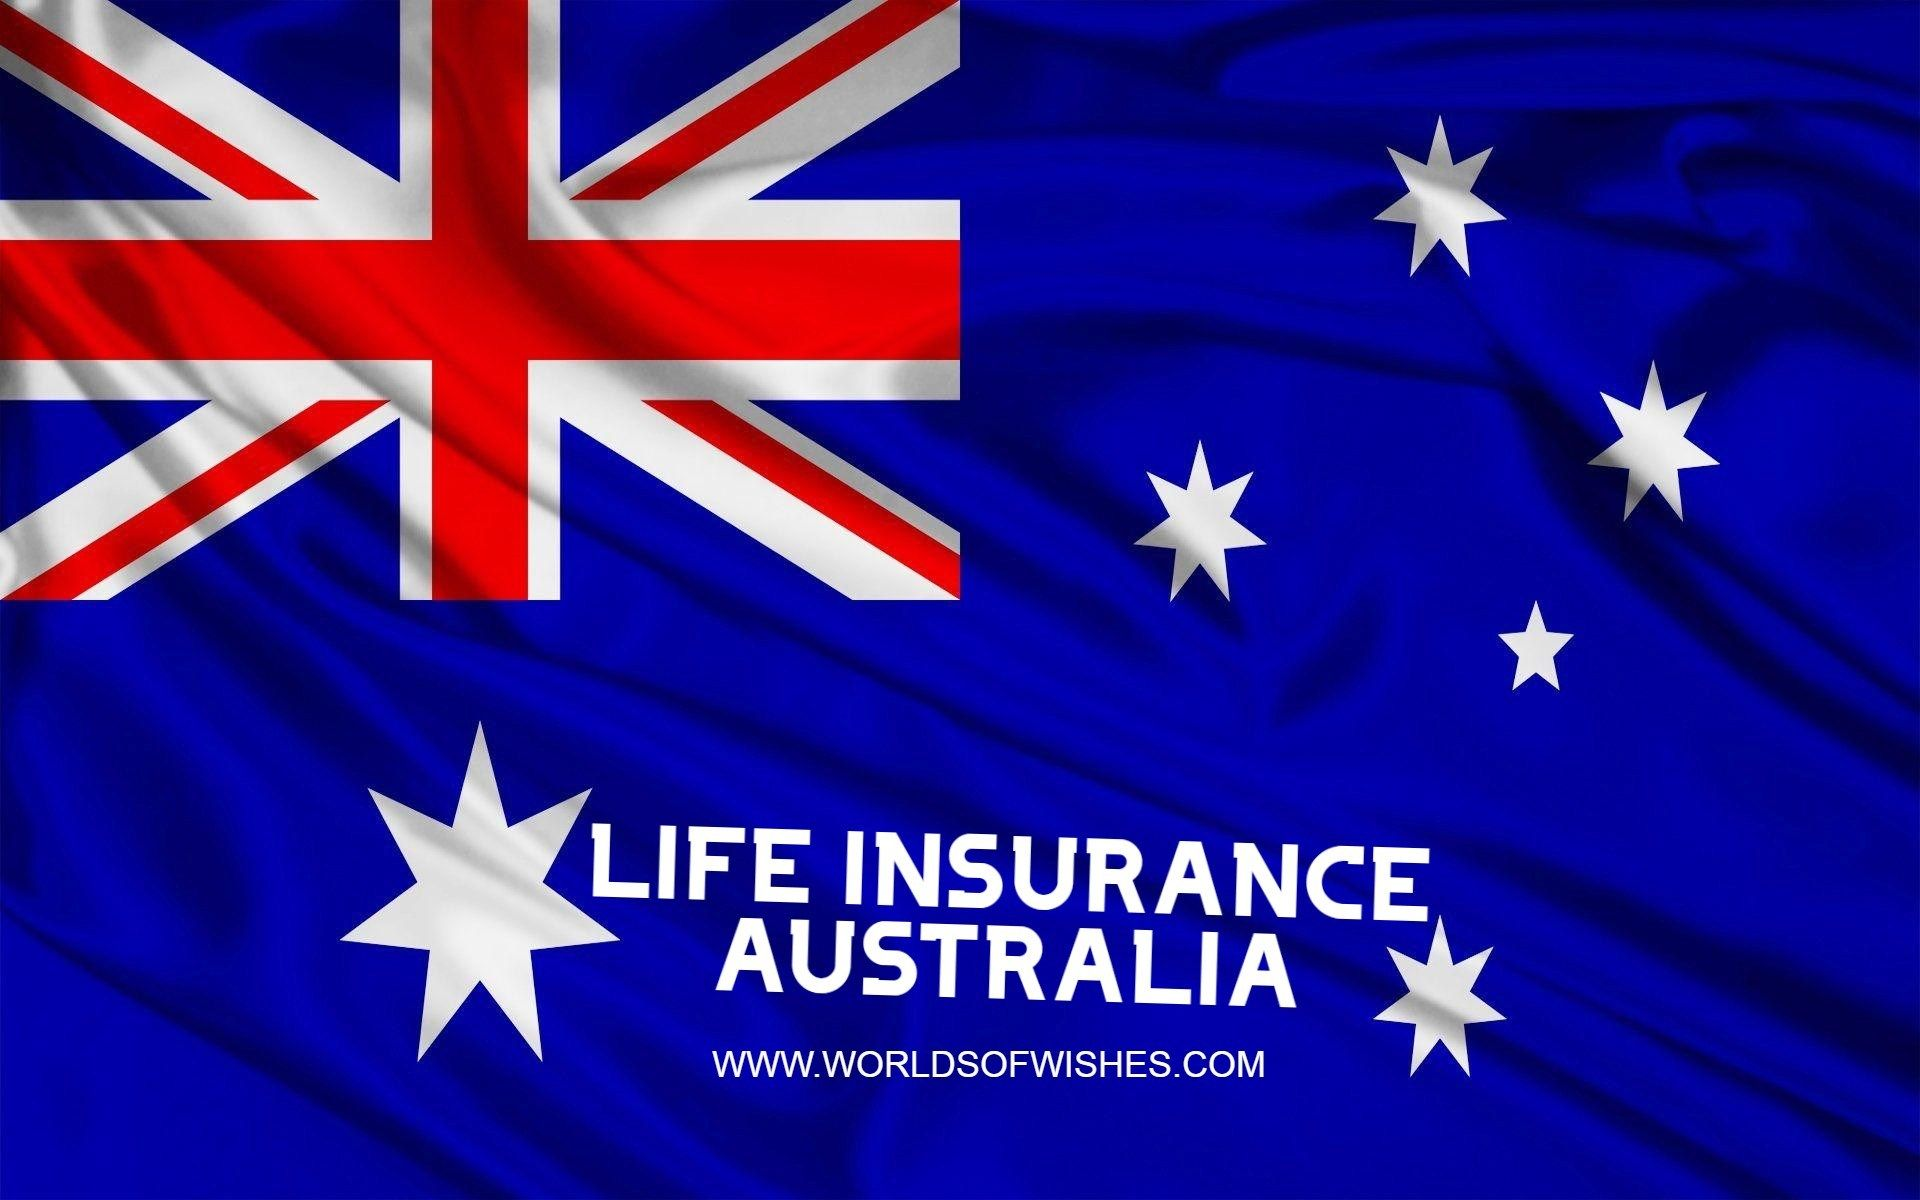 Life Insurance Australia Quotes 2019 World Of Wishes